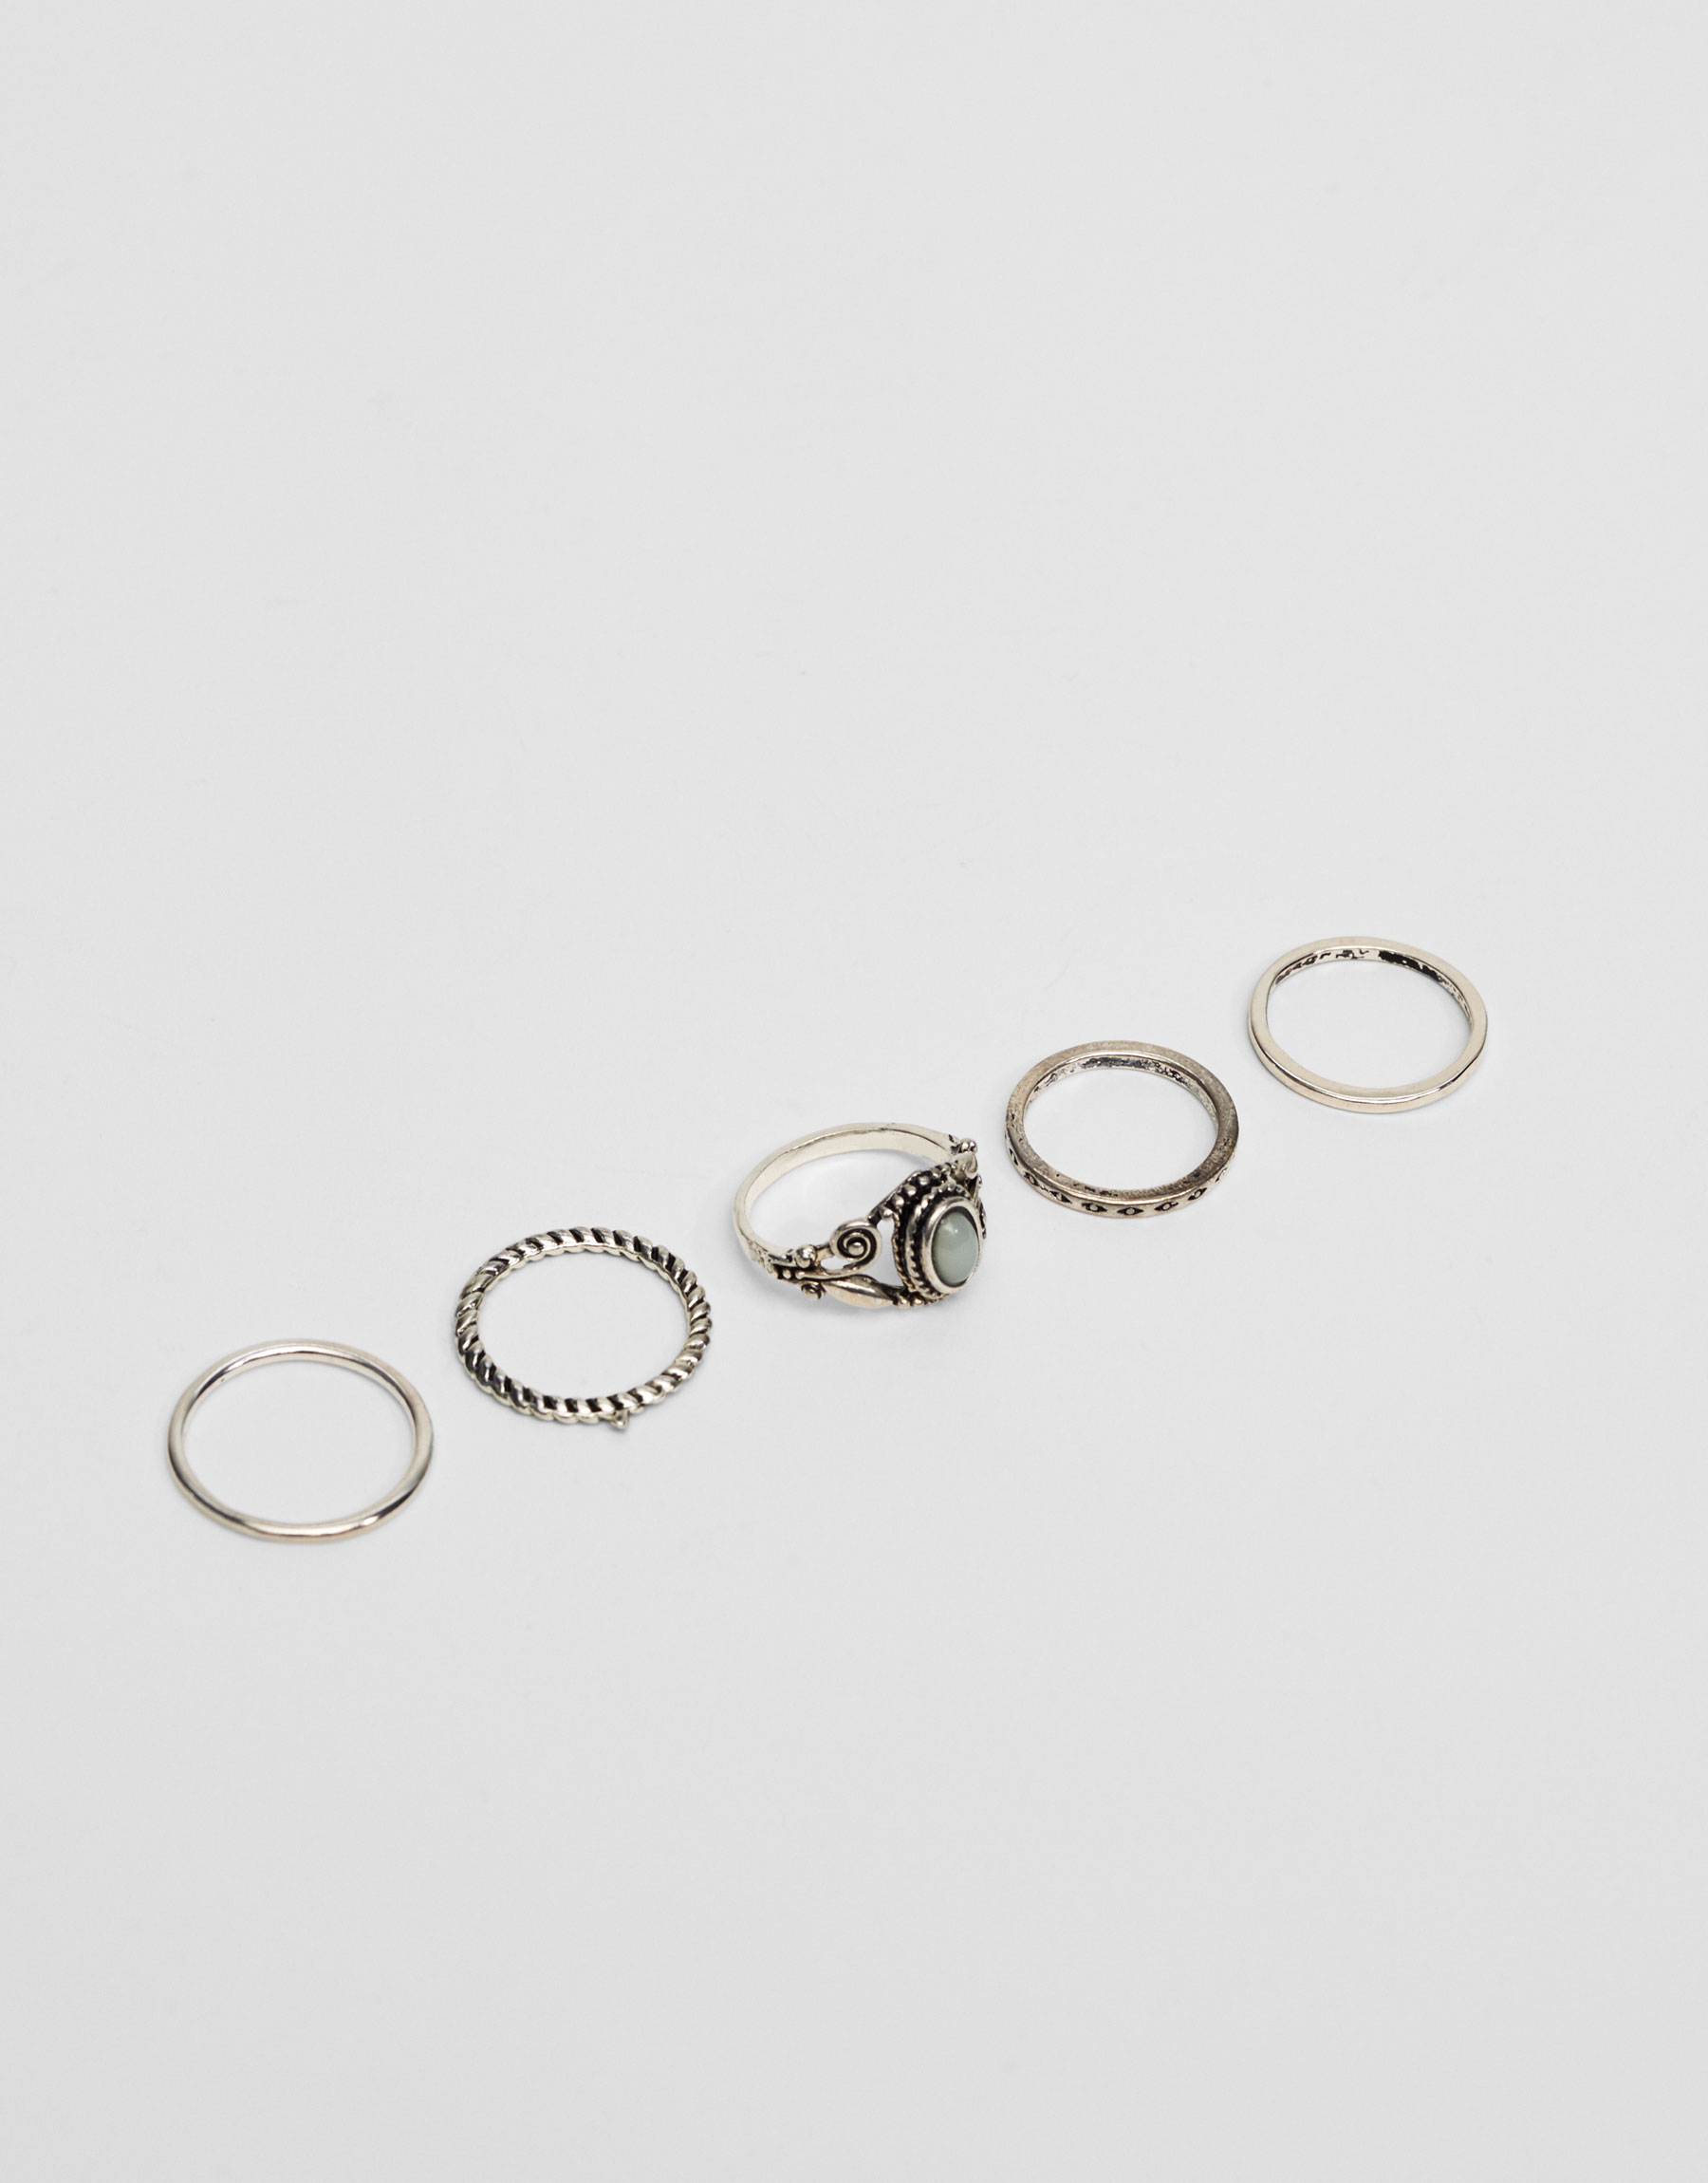 5-pack of assorted rings